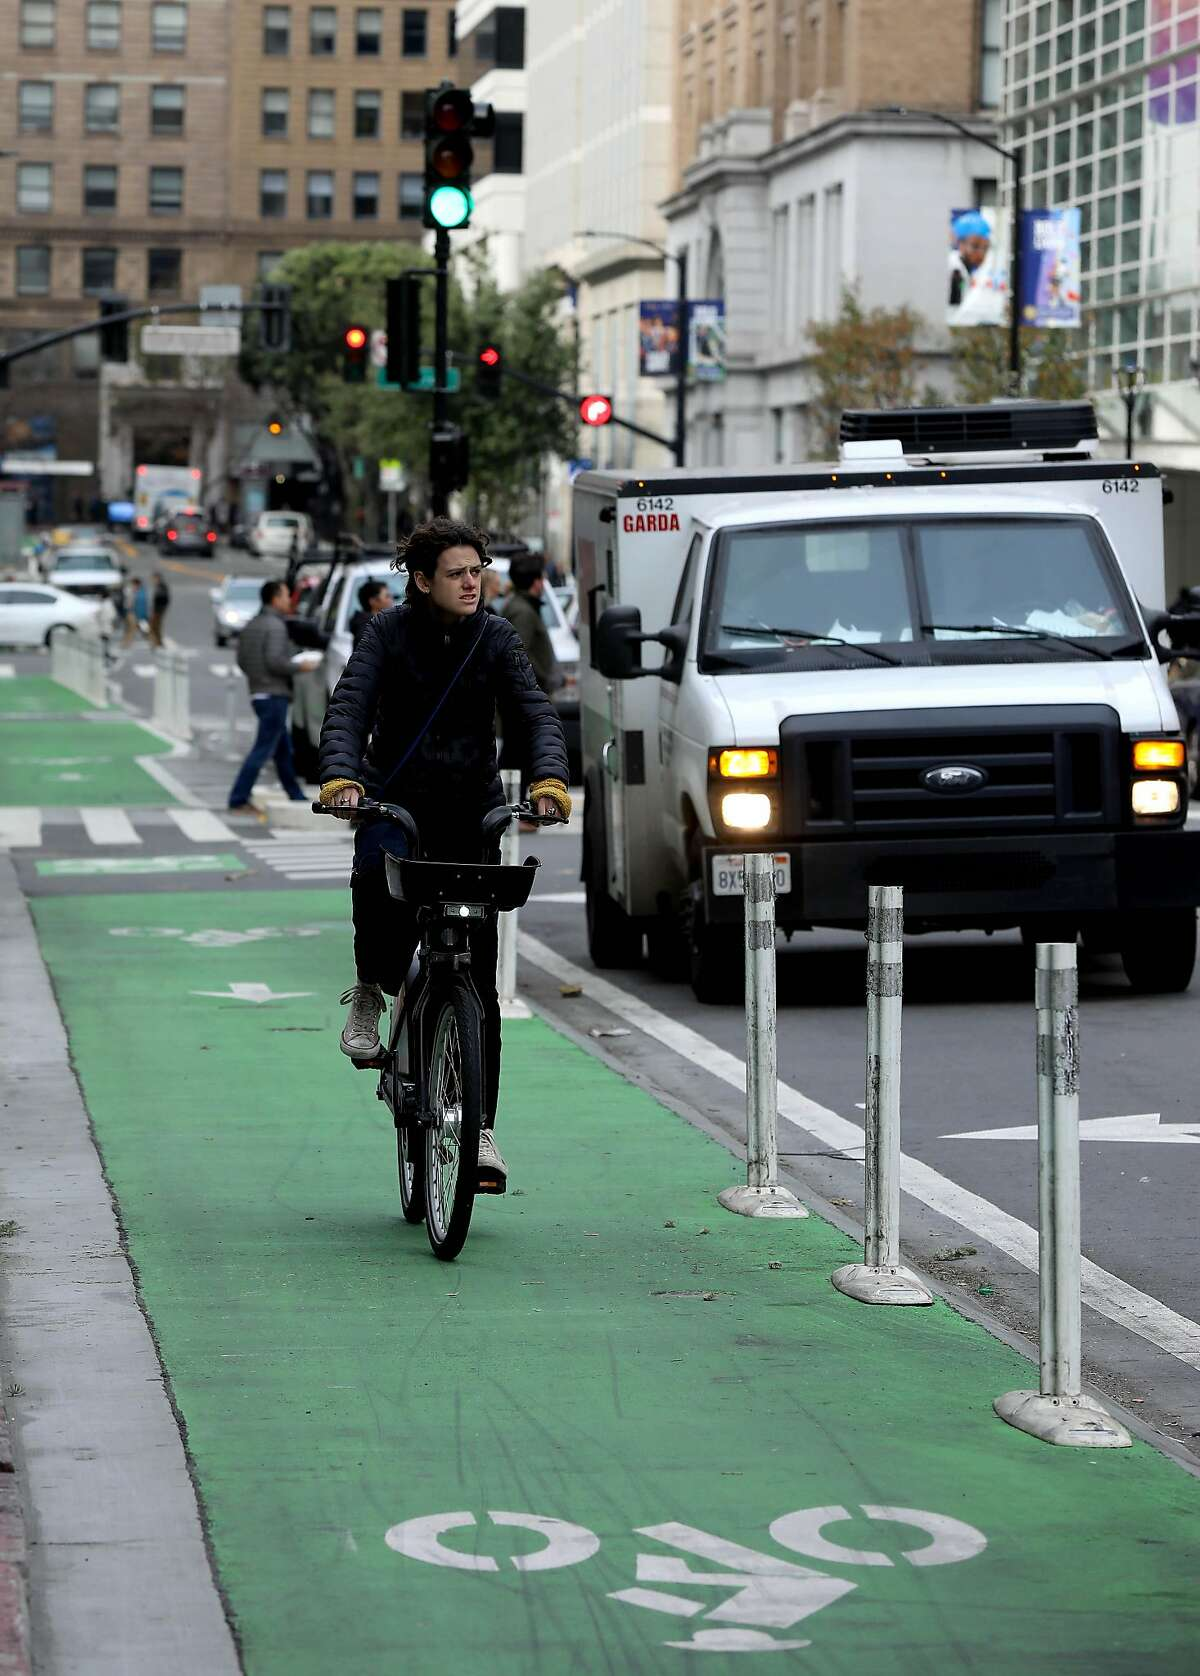 A cyclist travels in the bike lane near Howard and Second, in San Francisco, Calif., on Wednesday, January 15, 2020.